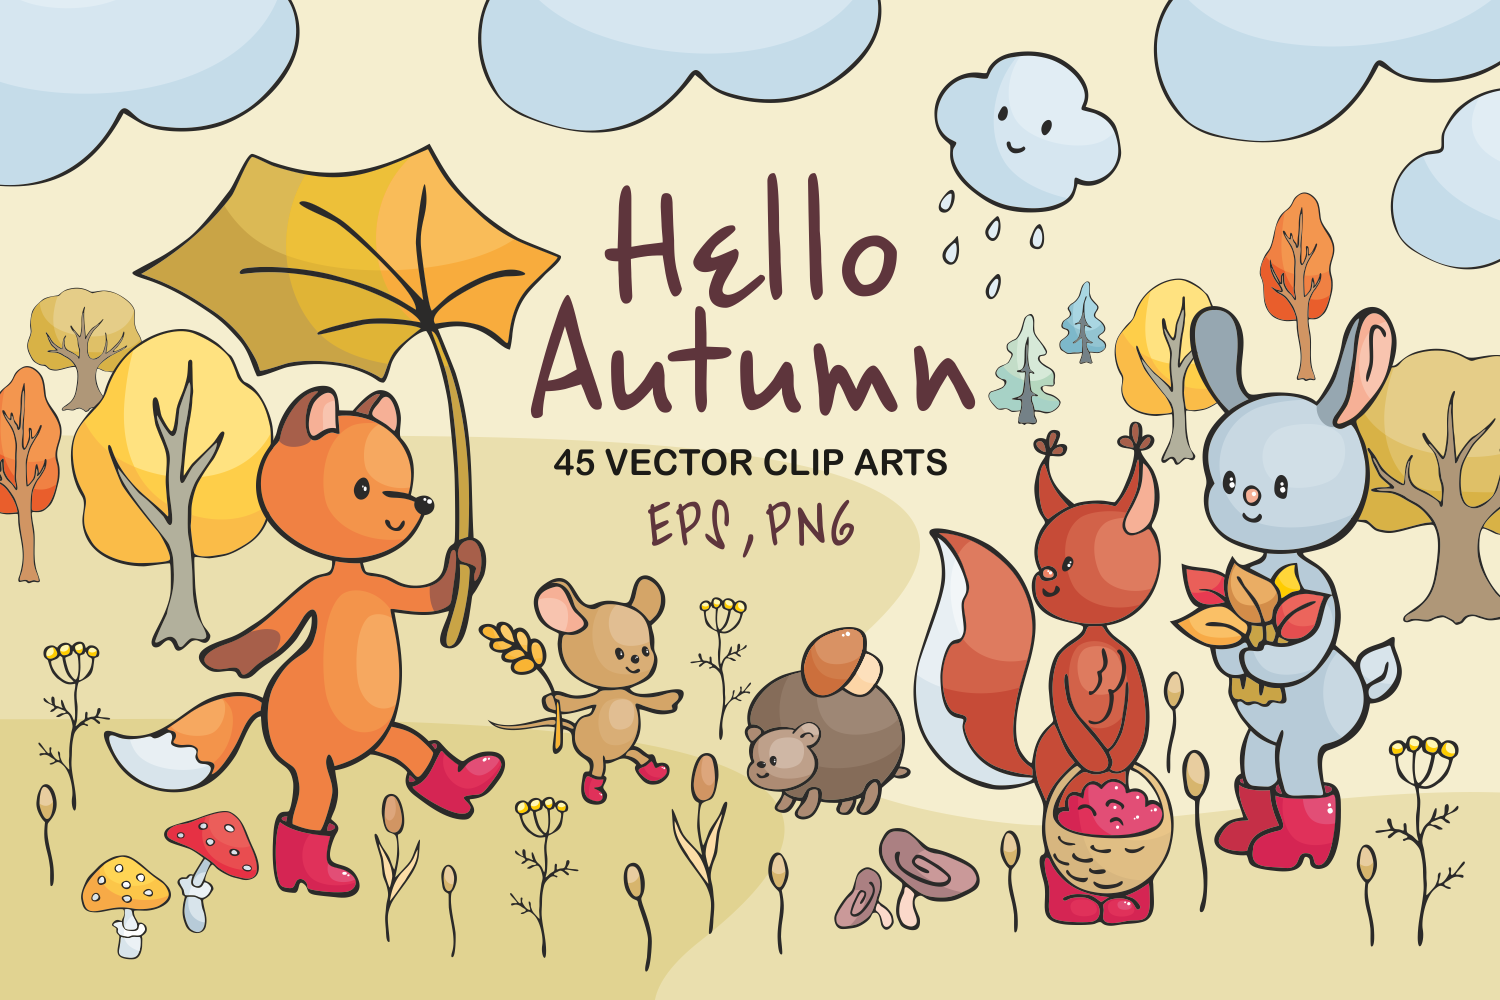 Hello autumn. Forest animals and plants in doodle style. - 0134 -